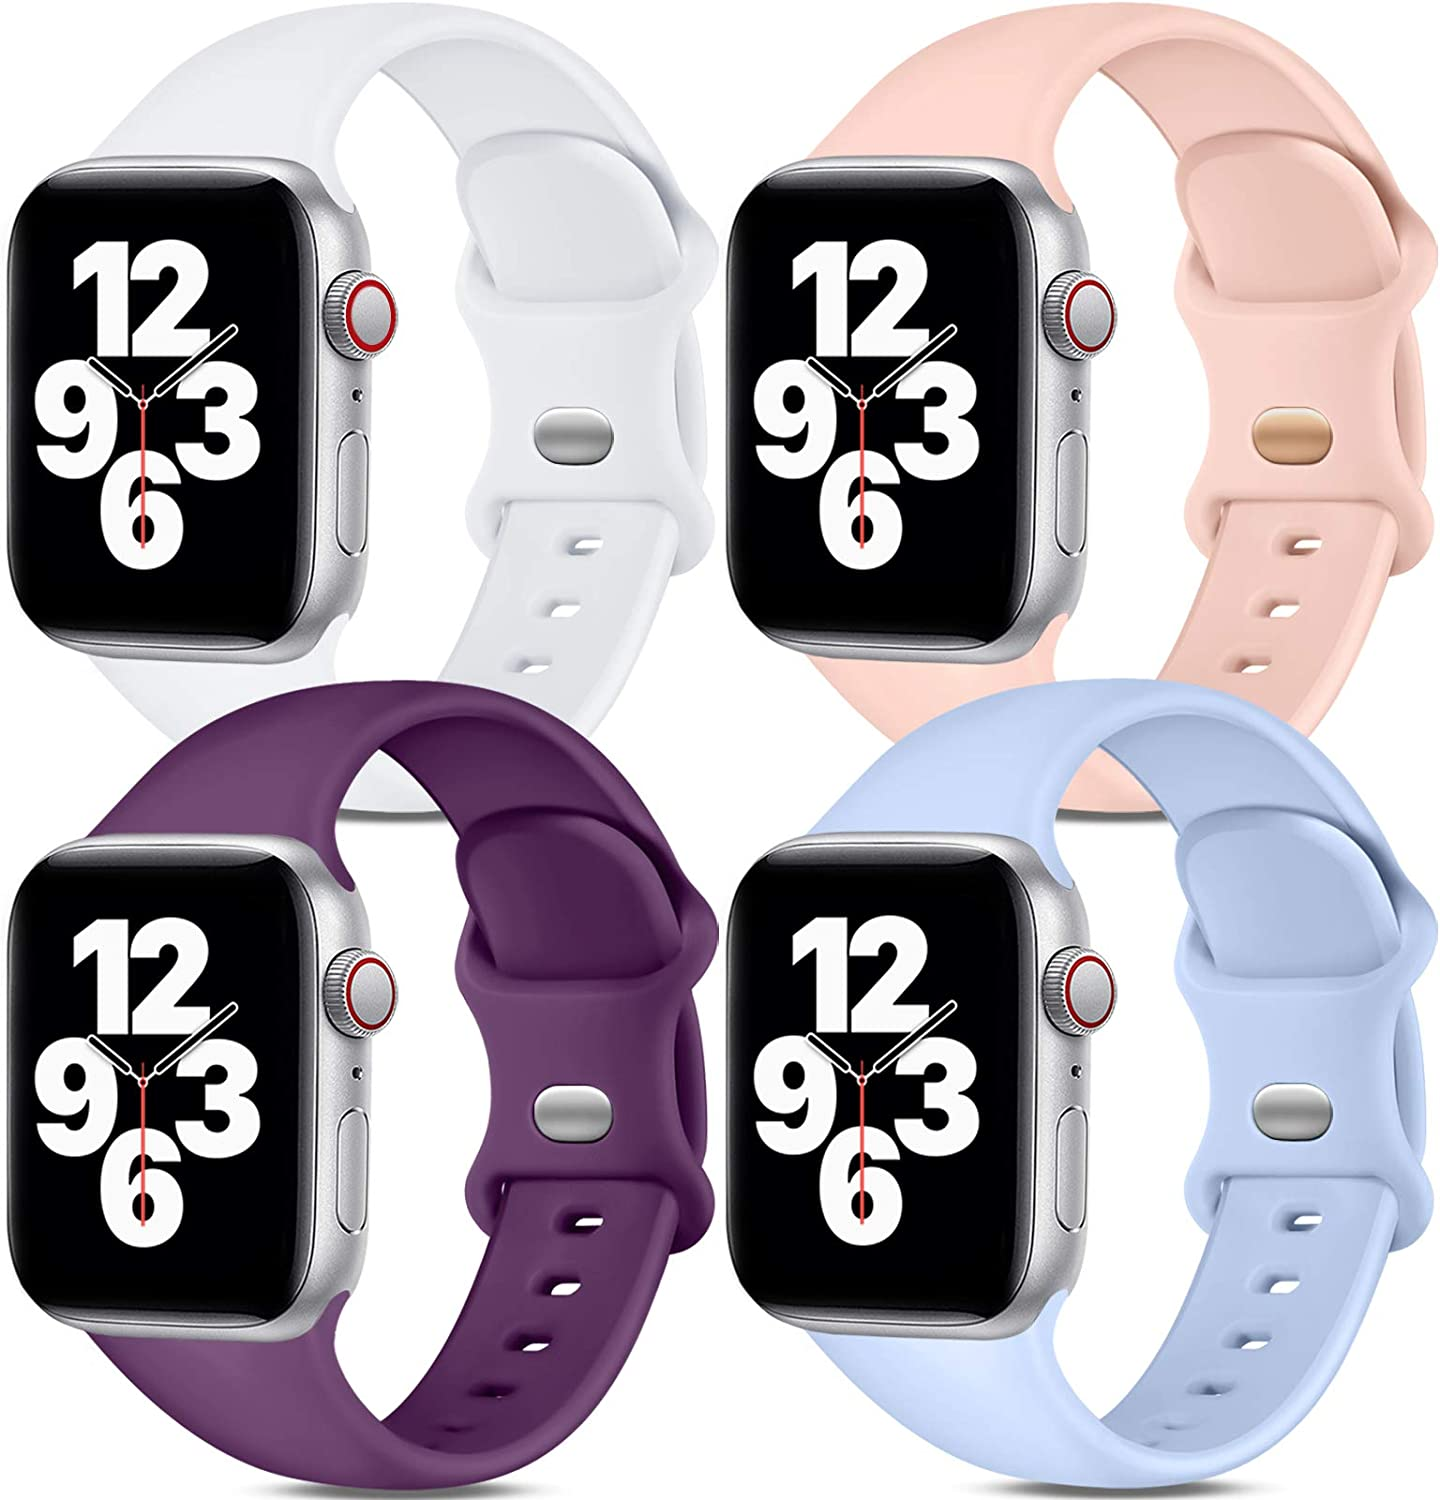 Dirrelo Band Compatible with Apple Watch Bands 42mm 44mm, [4-Pack] Soft Silicone Strap Wristbands for iWatch Series 3 5 6 4 2 1 SE Women Men, S/M White, Pinksand, Dark Purple, Purple